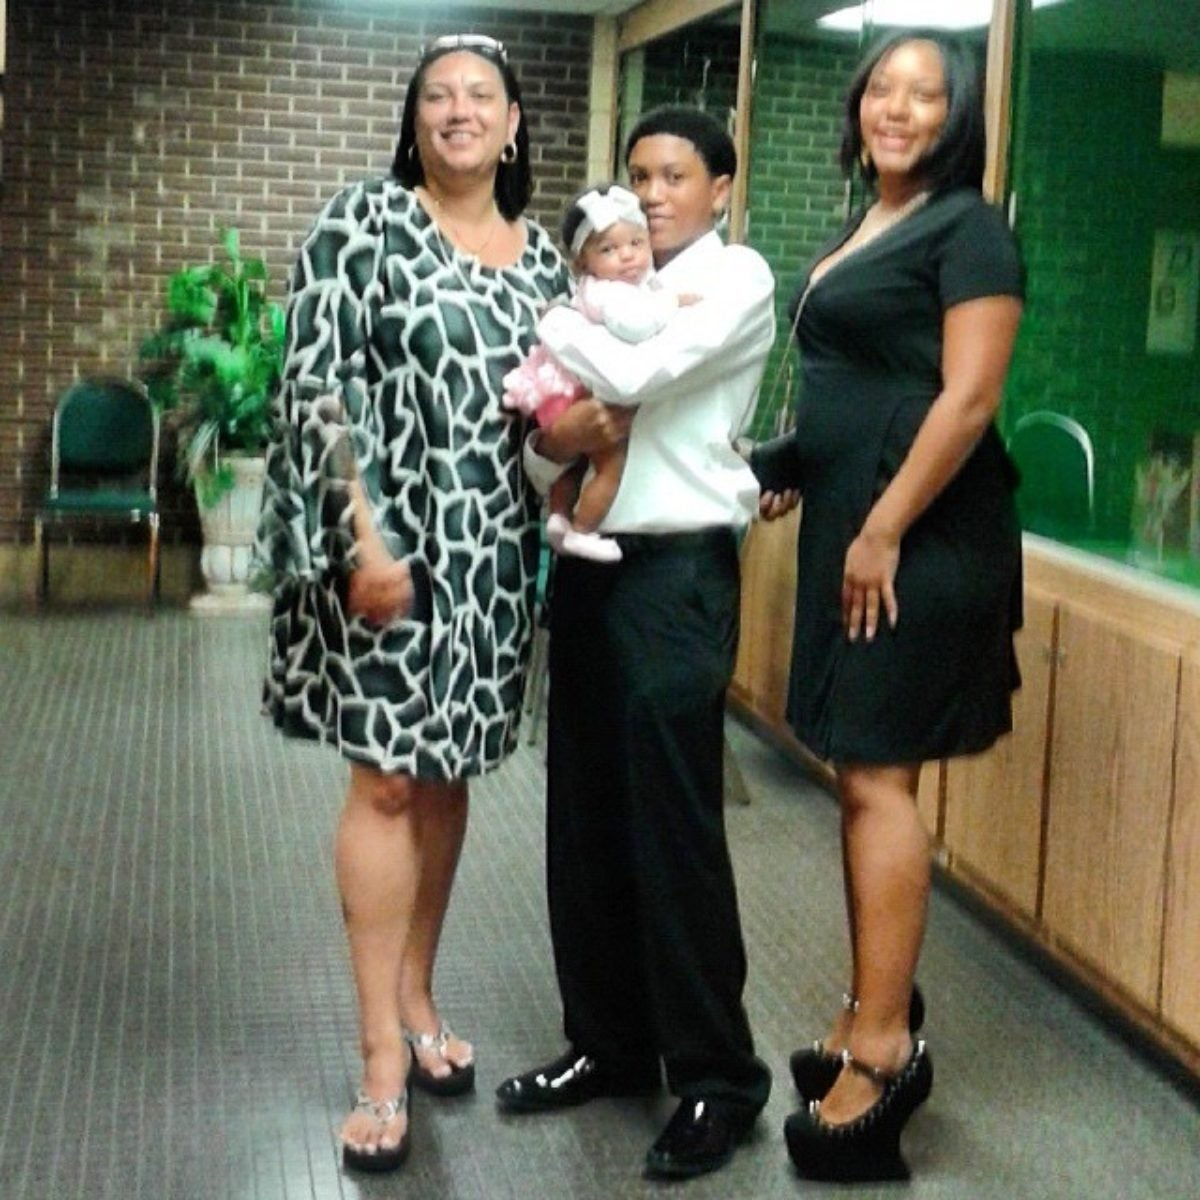 Michelle Kenney, Antwon, his Niece KyChelle Dudley, and sister Kyra Jamison. (Photo Credit: Michelle Kenney)